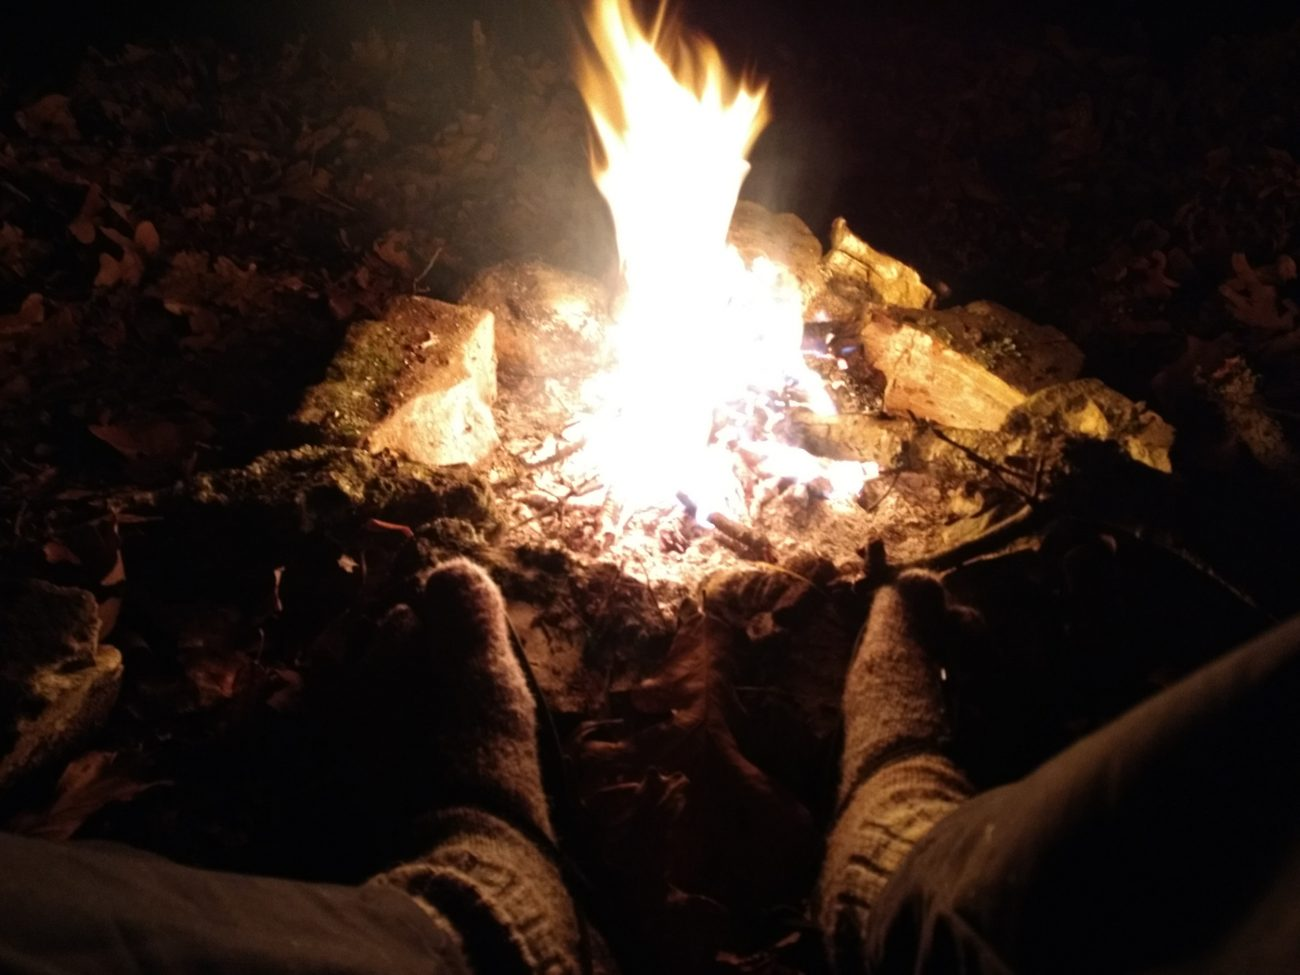 Warming my feet by the campfire.